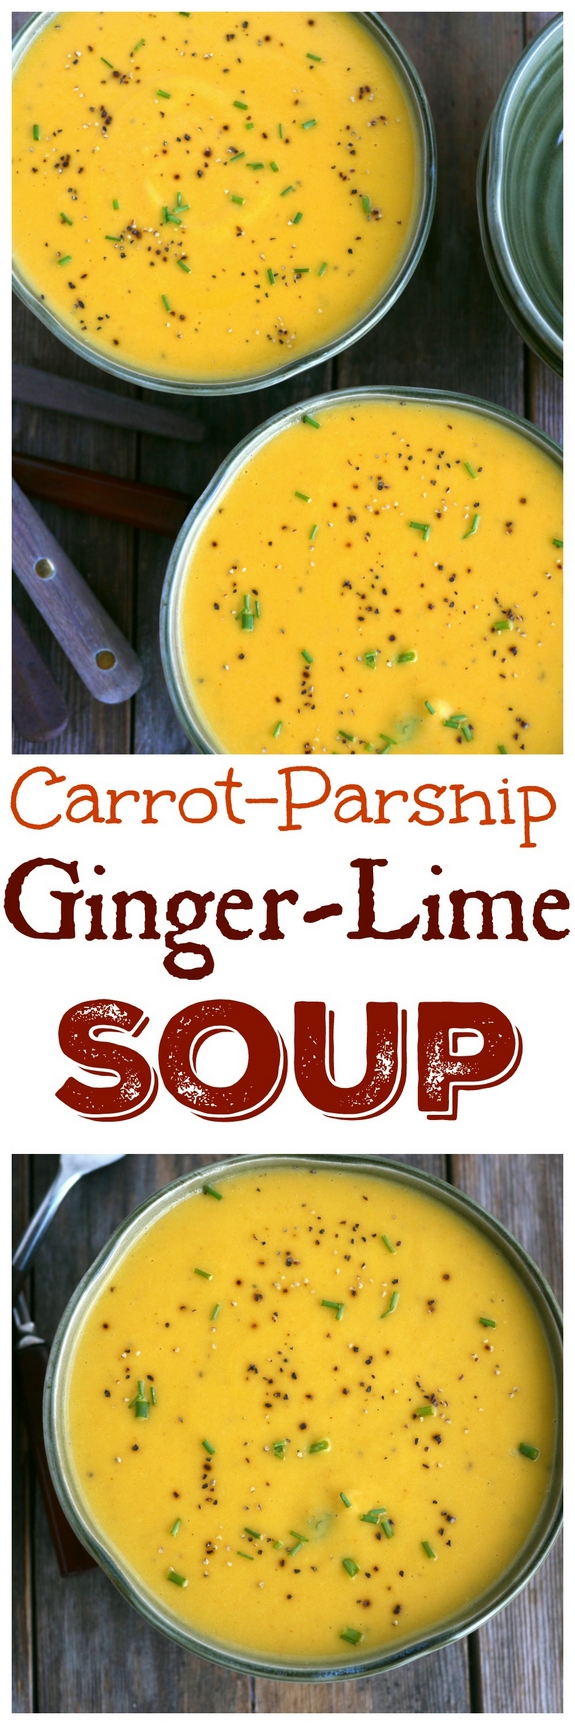 Carrot Parsnip Ginger Lime Soup